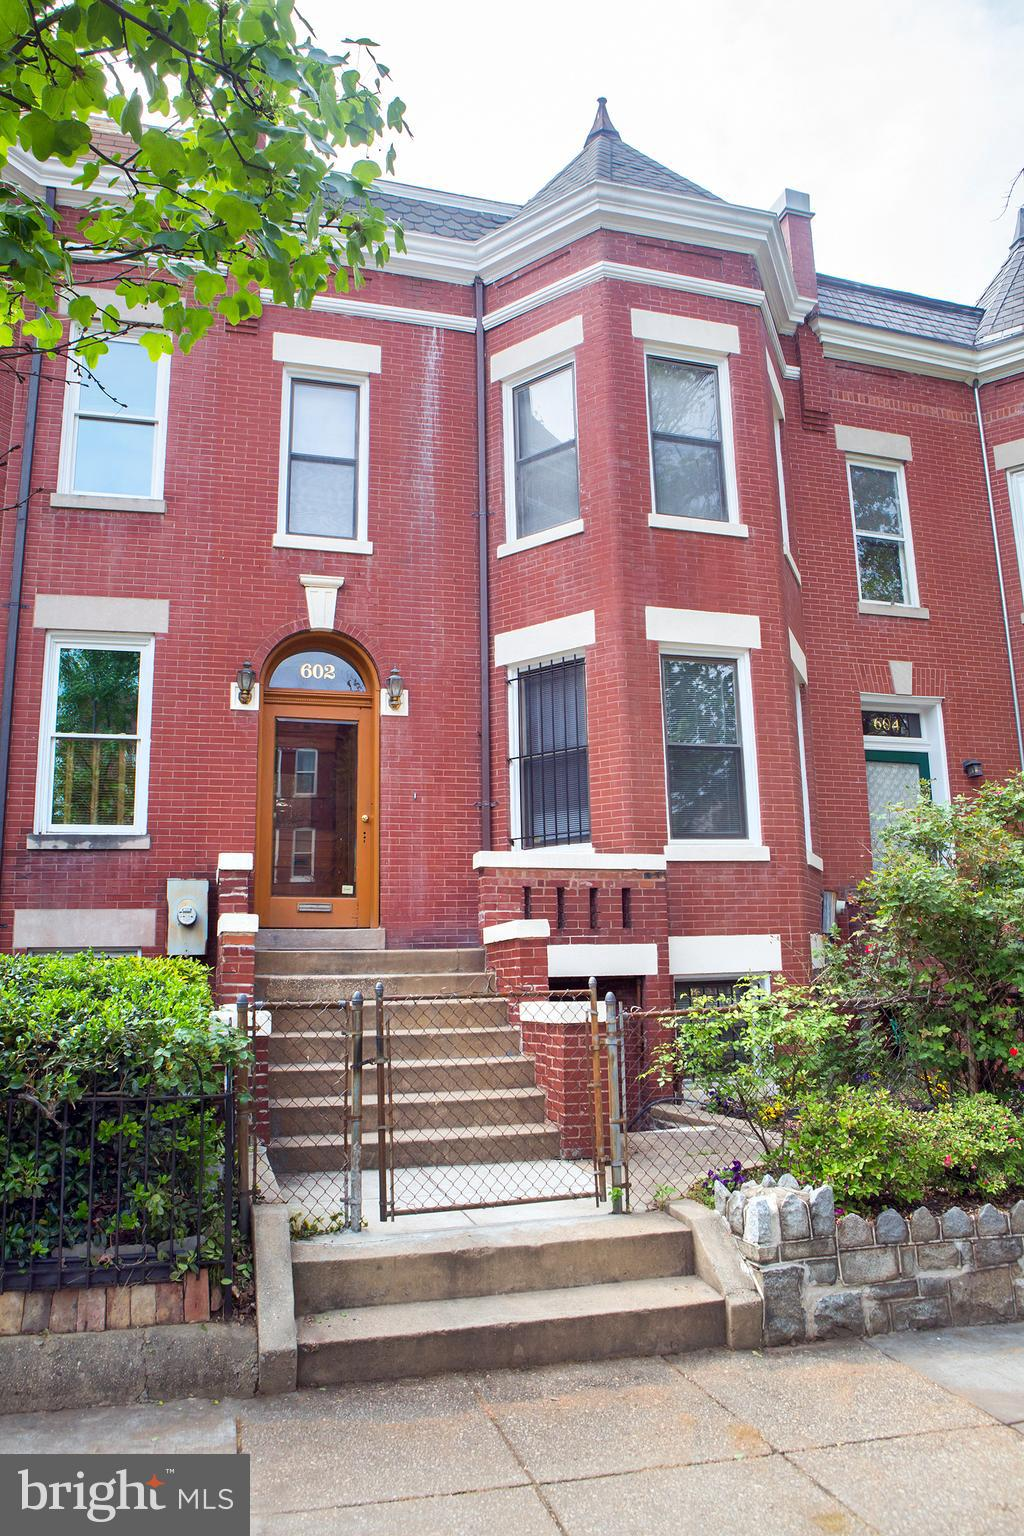 Off-Market while Disclosures are awaited. Great Victorian just short steps to Union Station, a healthy stroll from H st after dinner, an easy trek to Eastern Market, a quick ride to Union Market... new menus, new venues, good schools nearby, parks abound. The early morning sun will brighten your entrance, a later light will brighten your balconies. This property retains the charm of an earlier age. Warning! Its NOT Open, NOT Grey, NOT blase~  It has the warmth of ages and some demanded amenities.  This home has three finished levels, with 3 bedrooms above grade and lots of potential below grade. Many Original touches & unique upgrades plus a singular floor plan, makes for a one of a kind design,  With a wide lot & lots of square footage, this home is a unique value for the creative buyer.  Take a look, the trends of today may  stay around, but the style and charm of yesteryear will remain as charming and warming every year. Original features, warm wood, connecting stairs w/ in law suite front and back entrance. Fireplace in main living room area. Feels much larger, foyer entrance with original tiled foyer. Two balconies from upstairs and kitchen. It is close to E Union Station market and H st corridor, on a quiet residential stree.